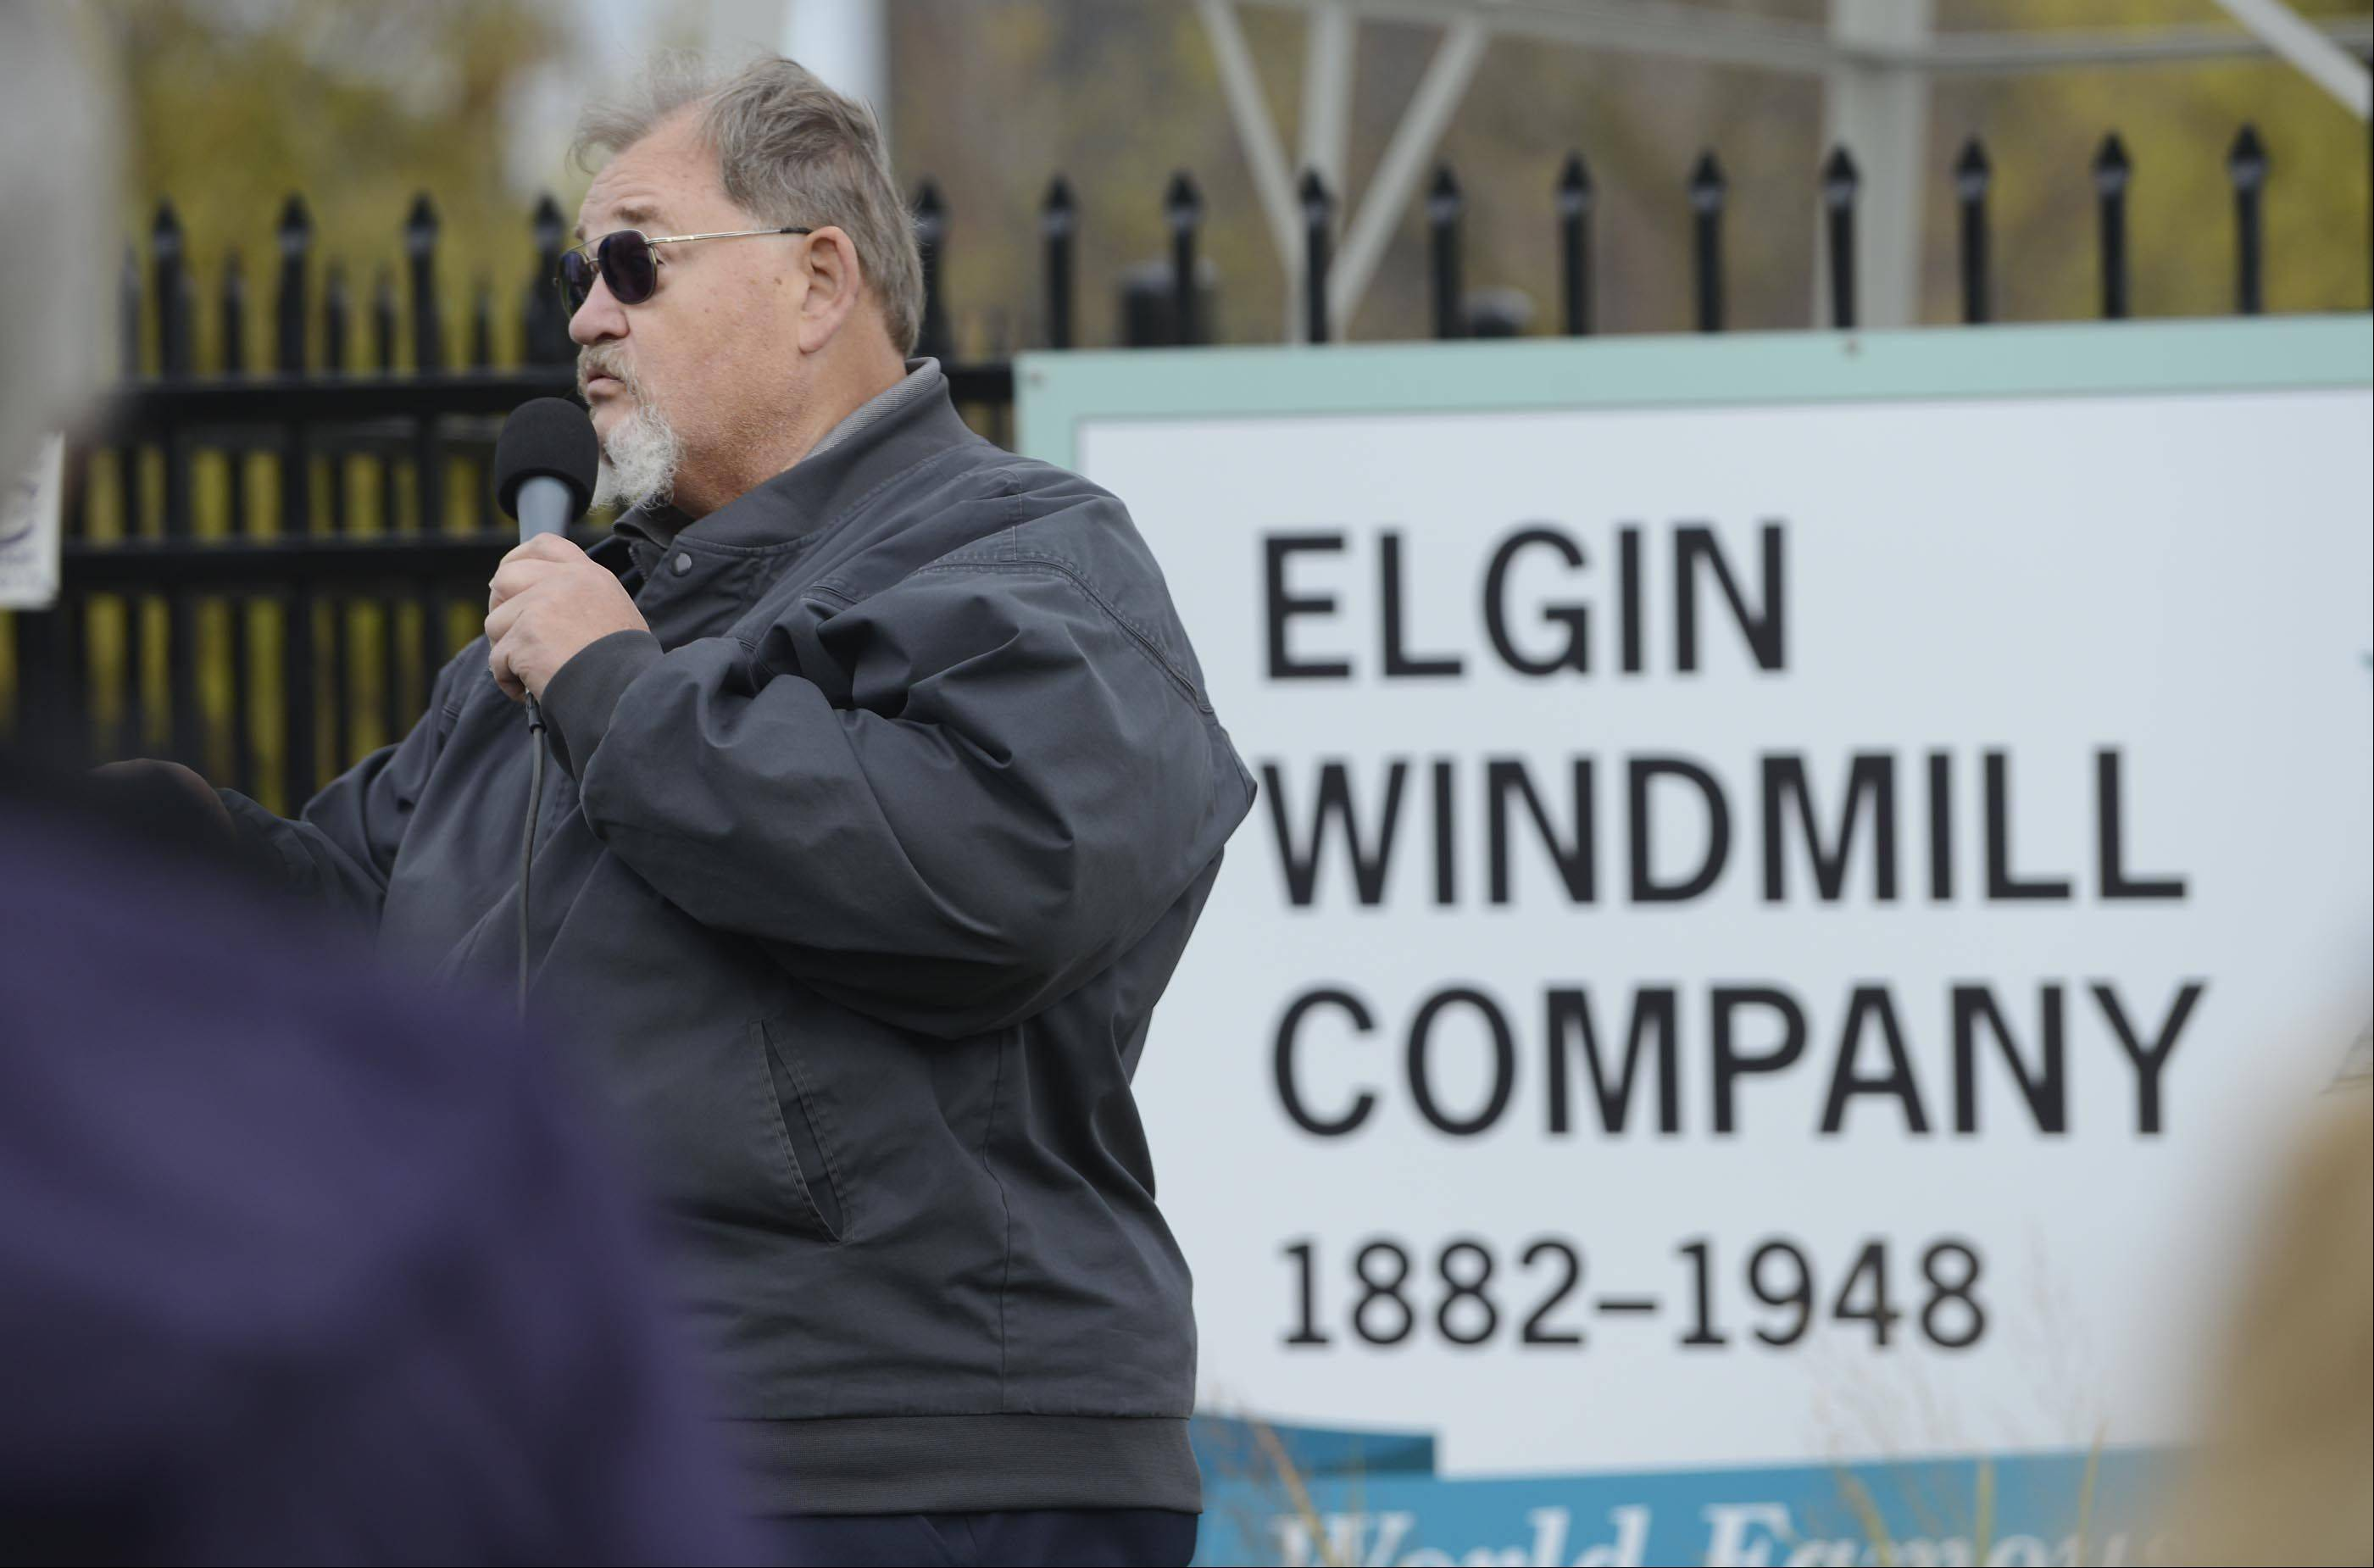 Maurice Dyer, an Elgin Historical Society board member, speaks Sunday at the dedication of a 91-year-old windmill at Foundry Park in Elgin. The windmill is a relic from the Elgin Wind, Power and Pump Co., which closed in 1948. It was donated to the Elgin Area Historical Society and refurbished by windmill expert Frank Engel.